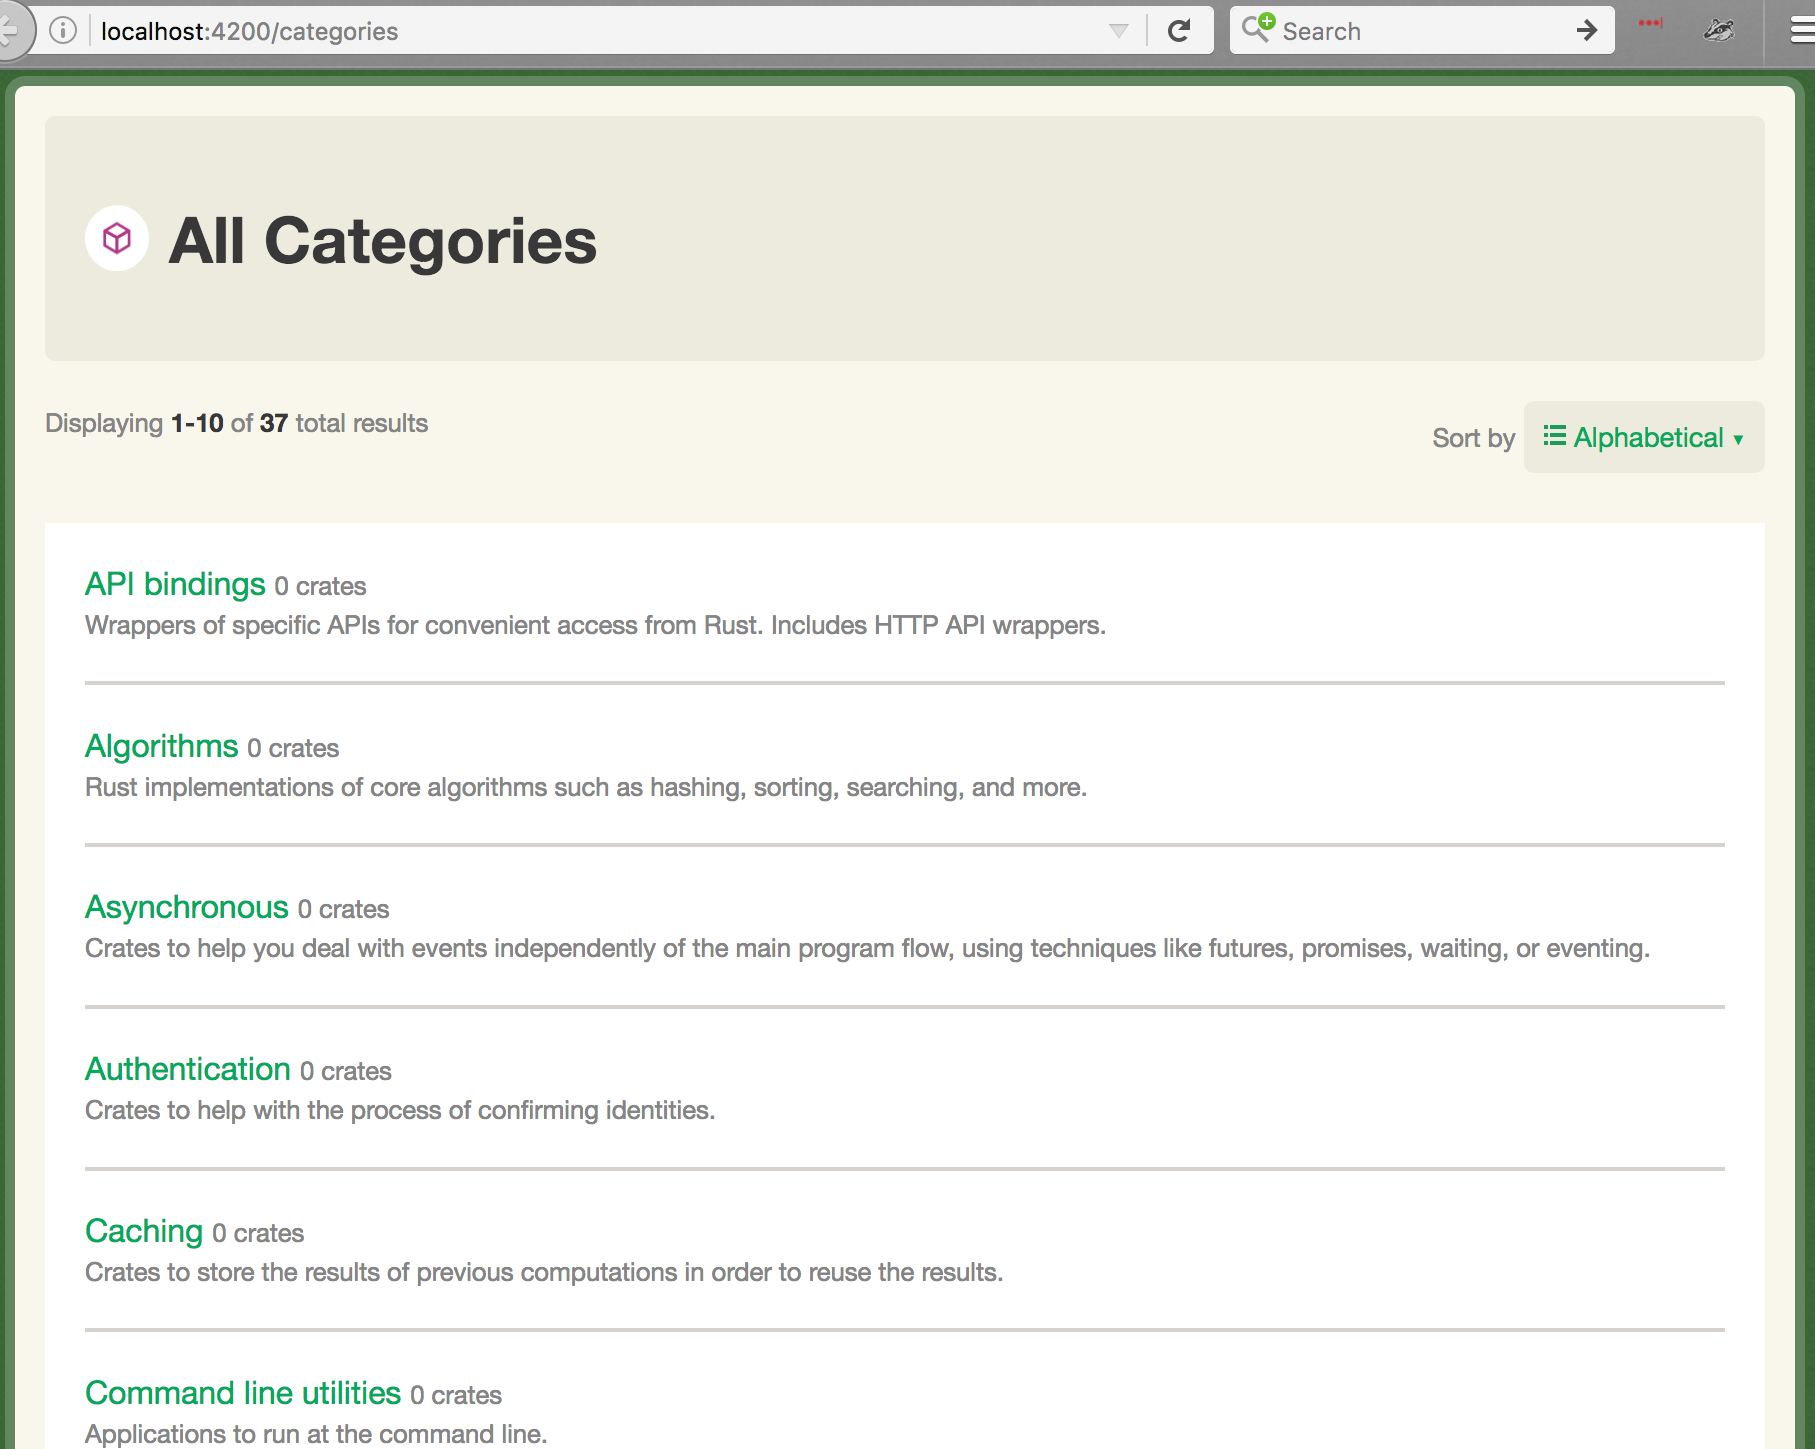 Preview of what the main category list page will look like